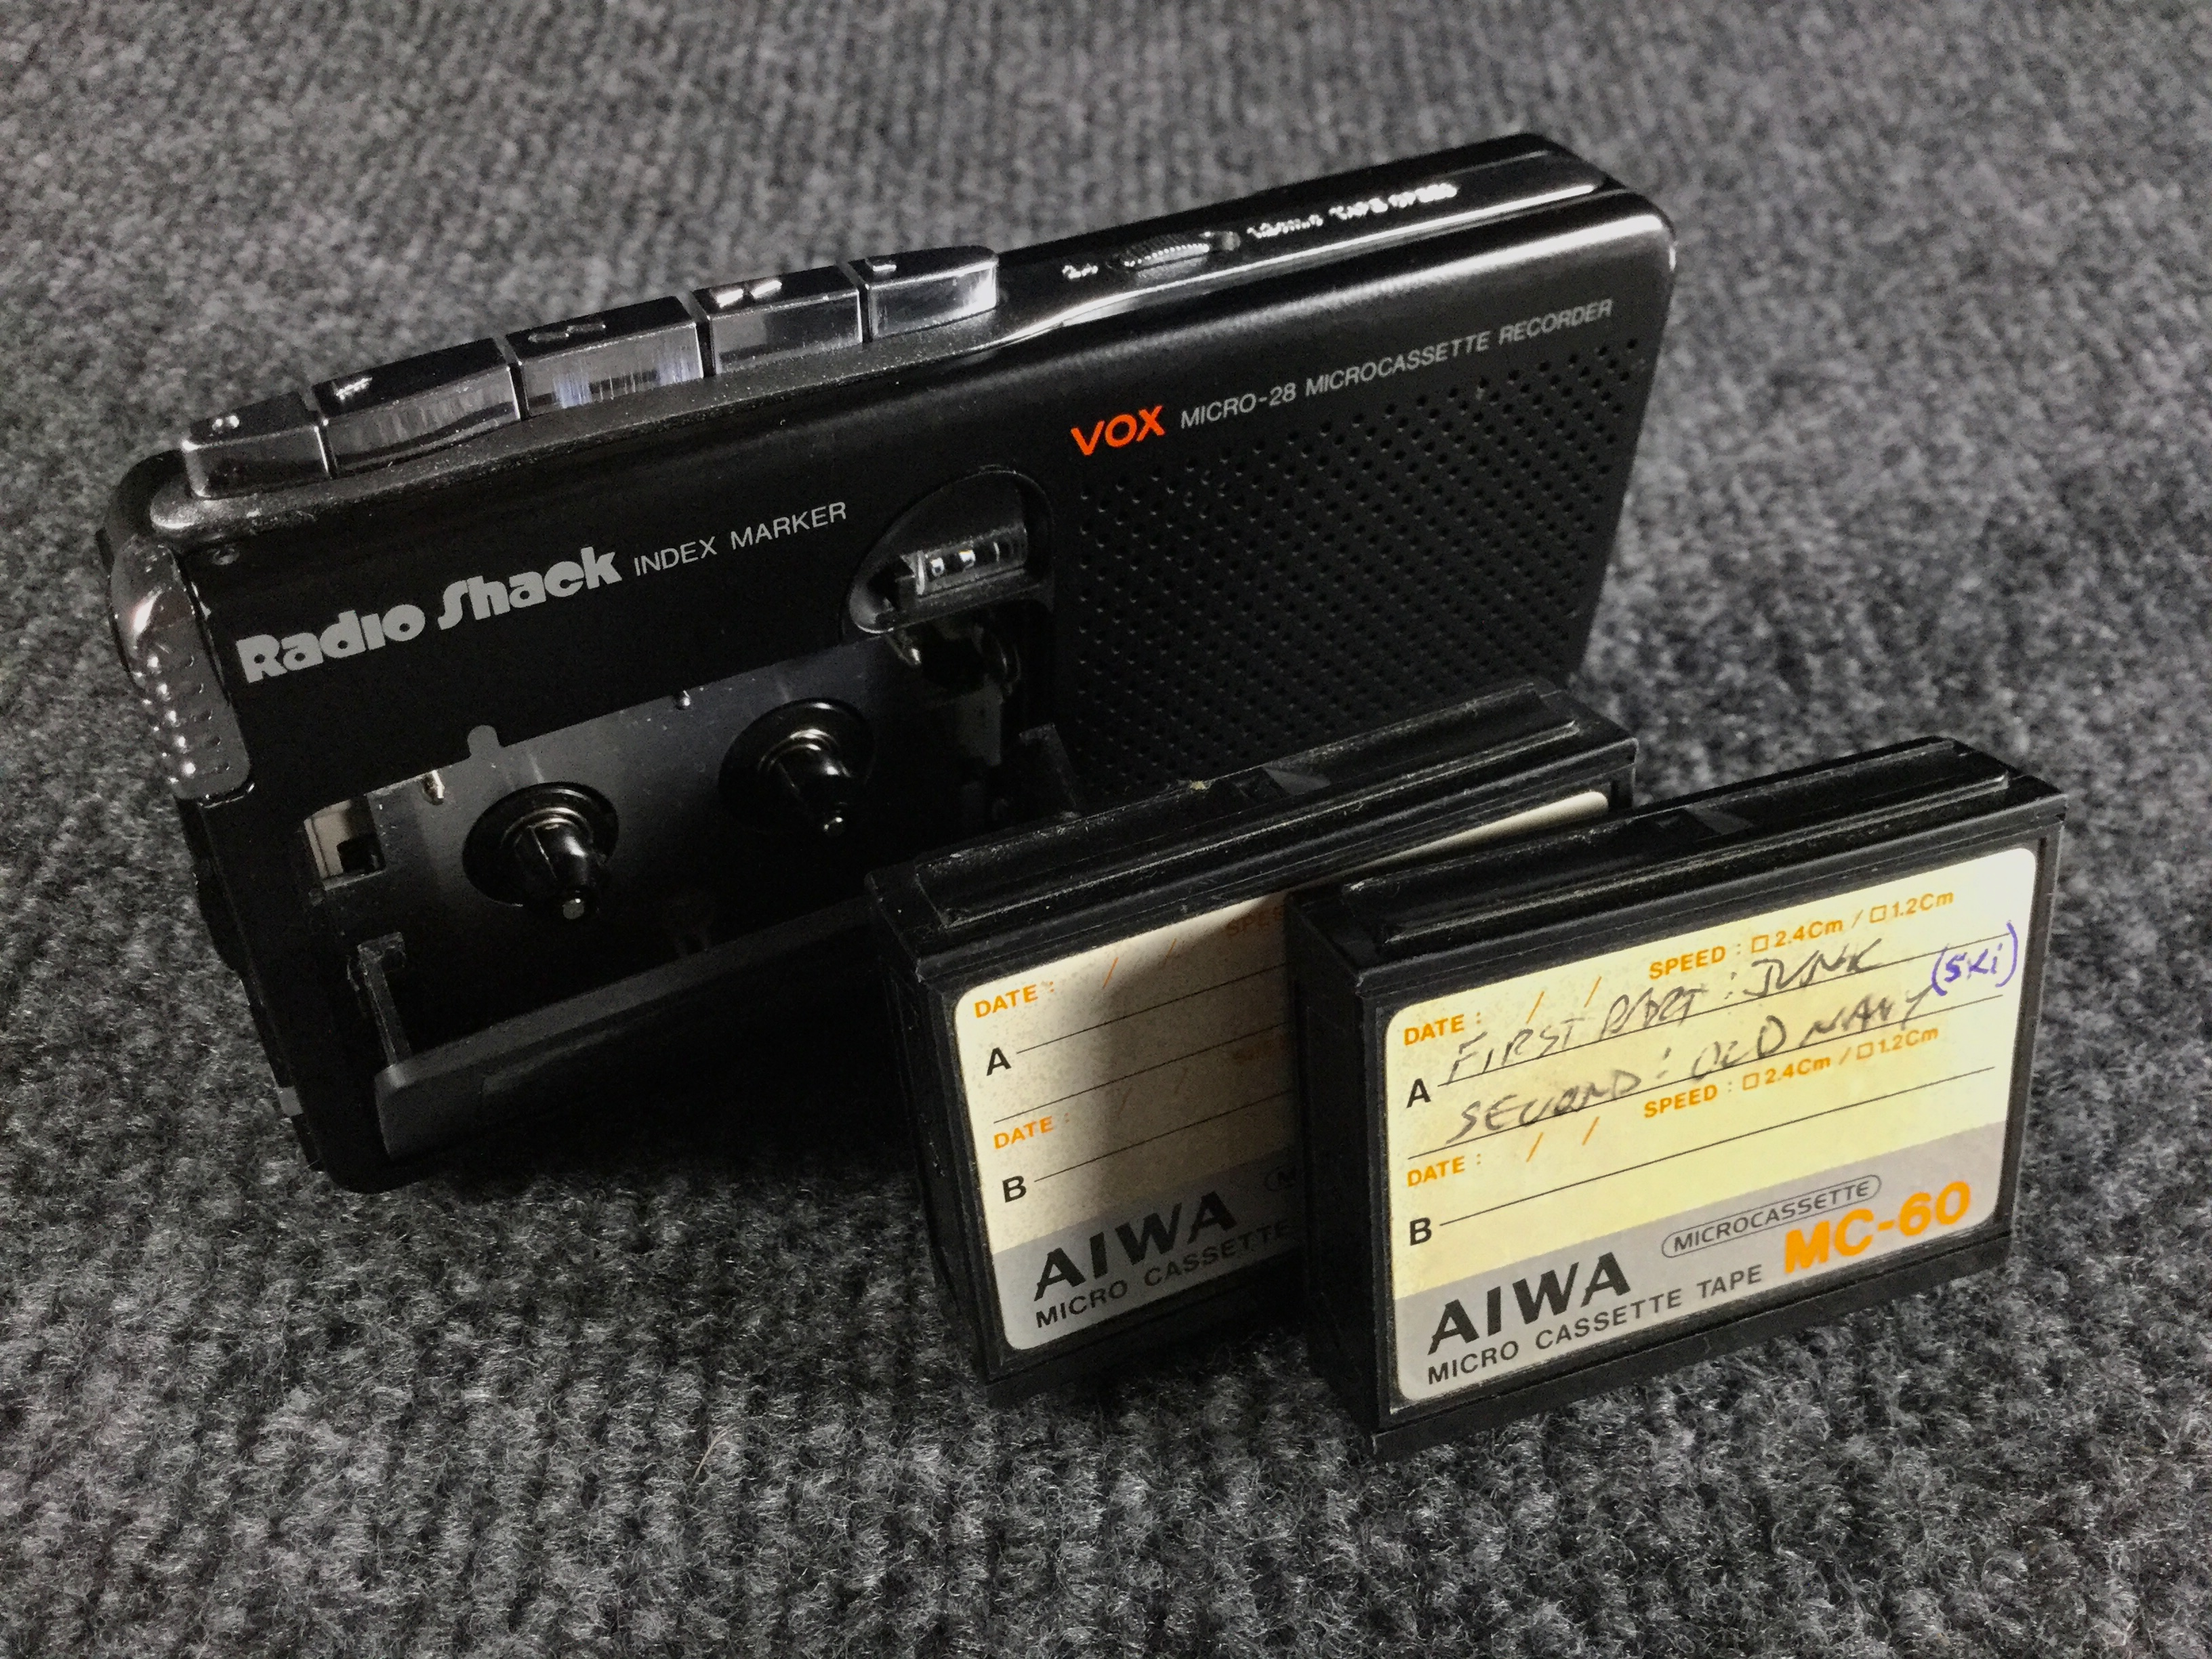 Micro-28 Recorder and Aiwa Tape